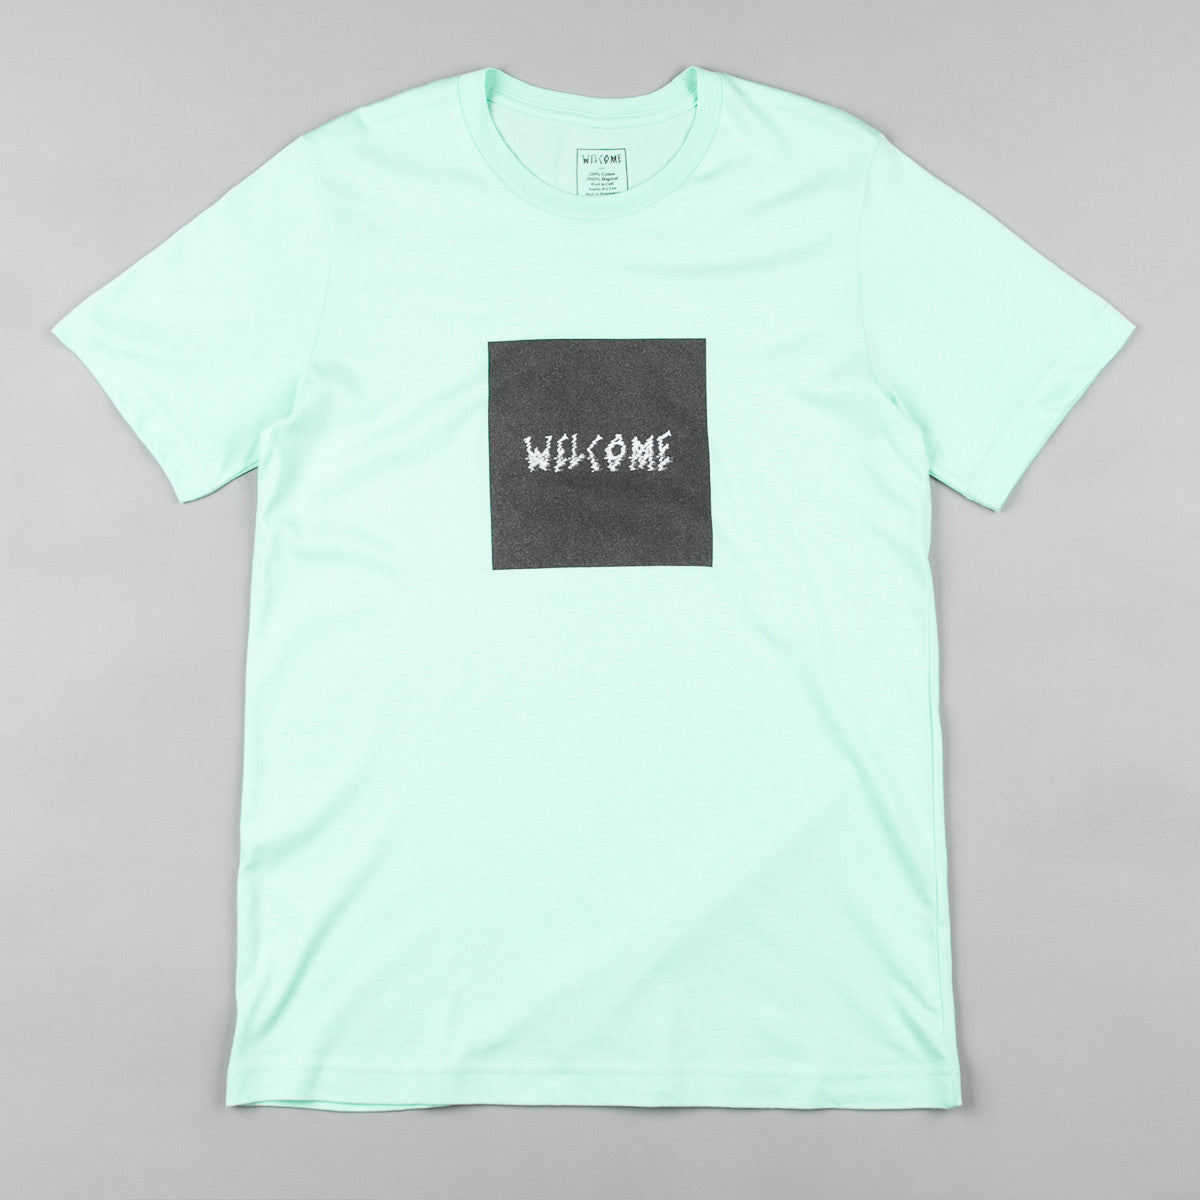 Welcome Skateboards Screenshot T-Shirt - Mint / Black